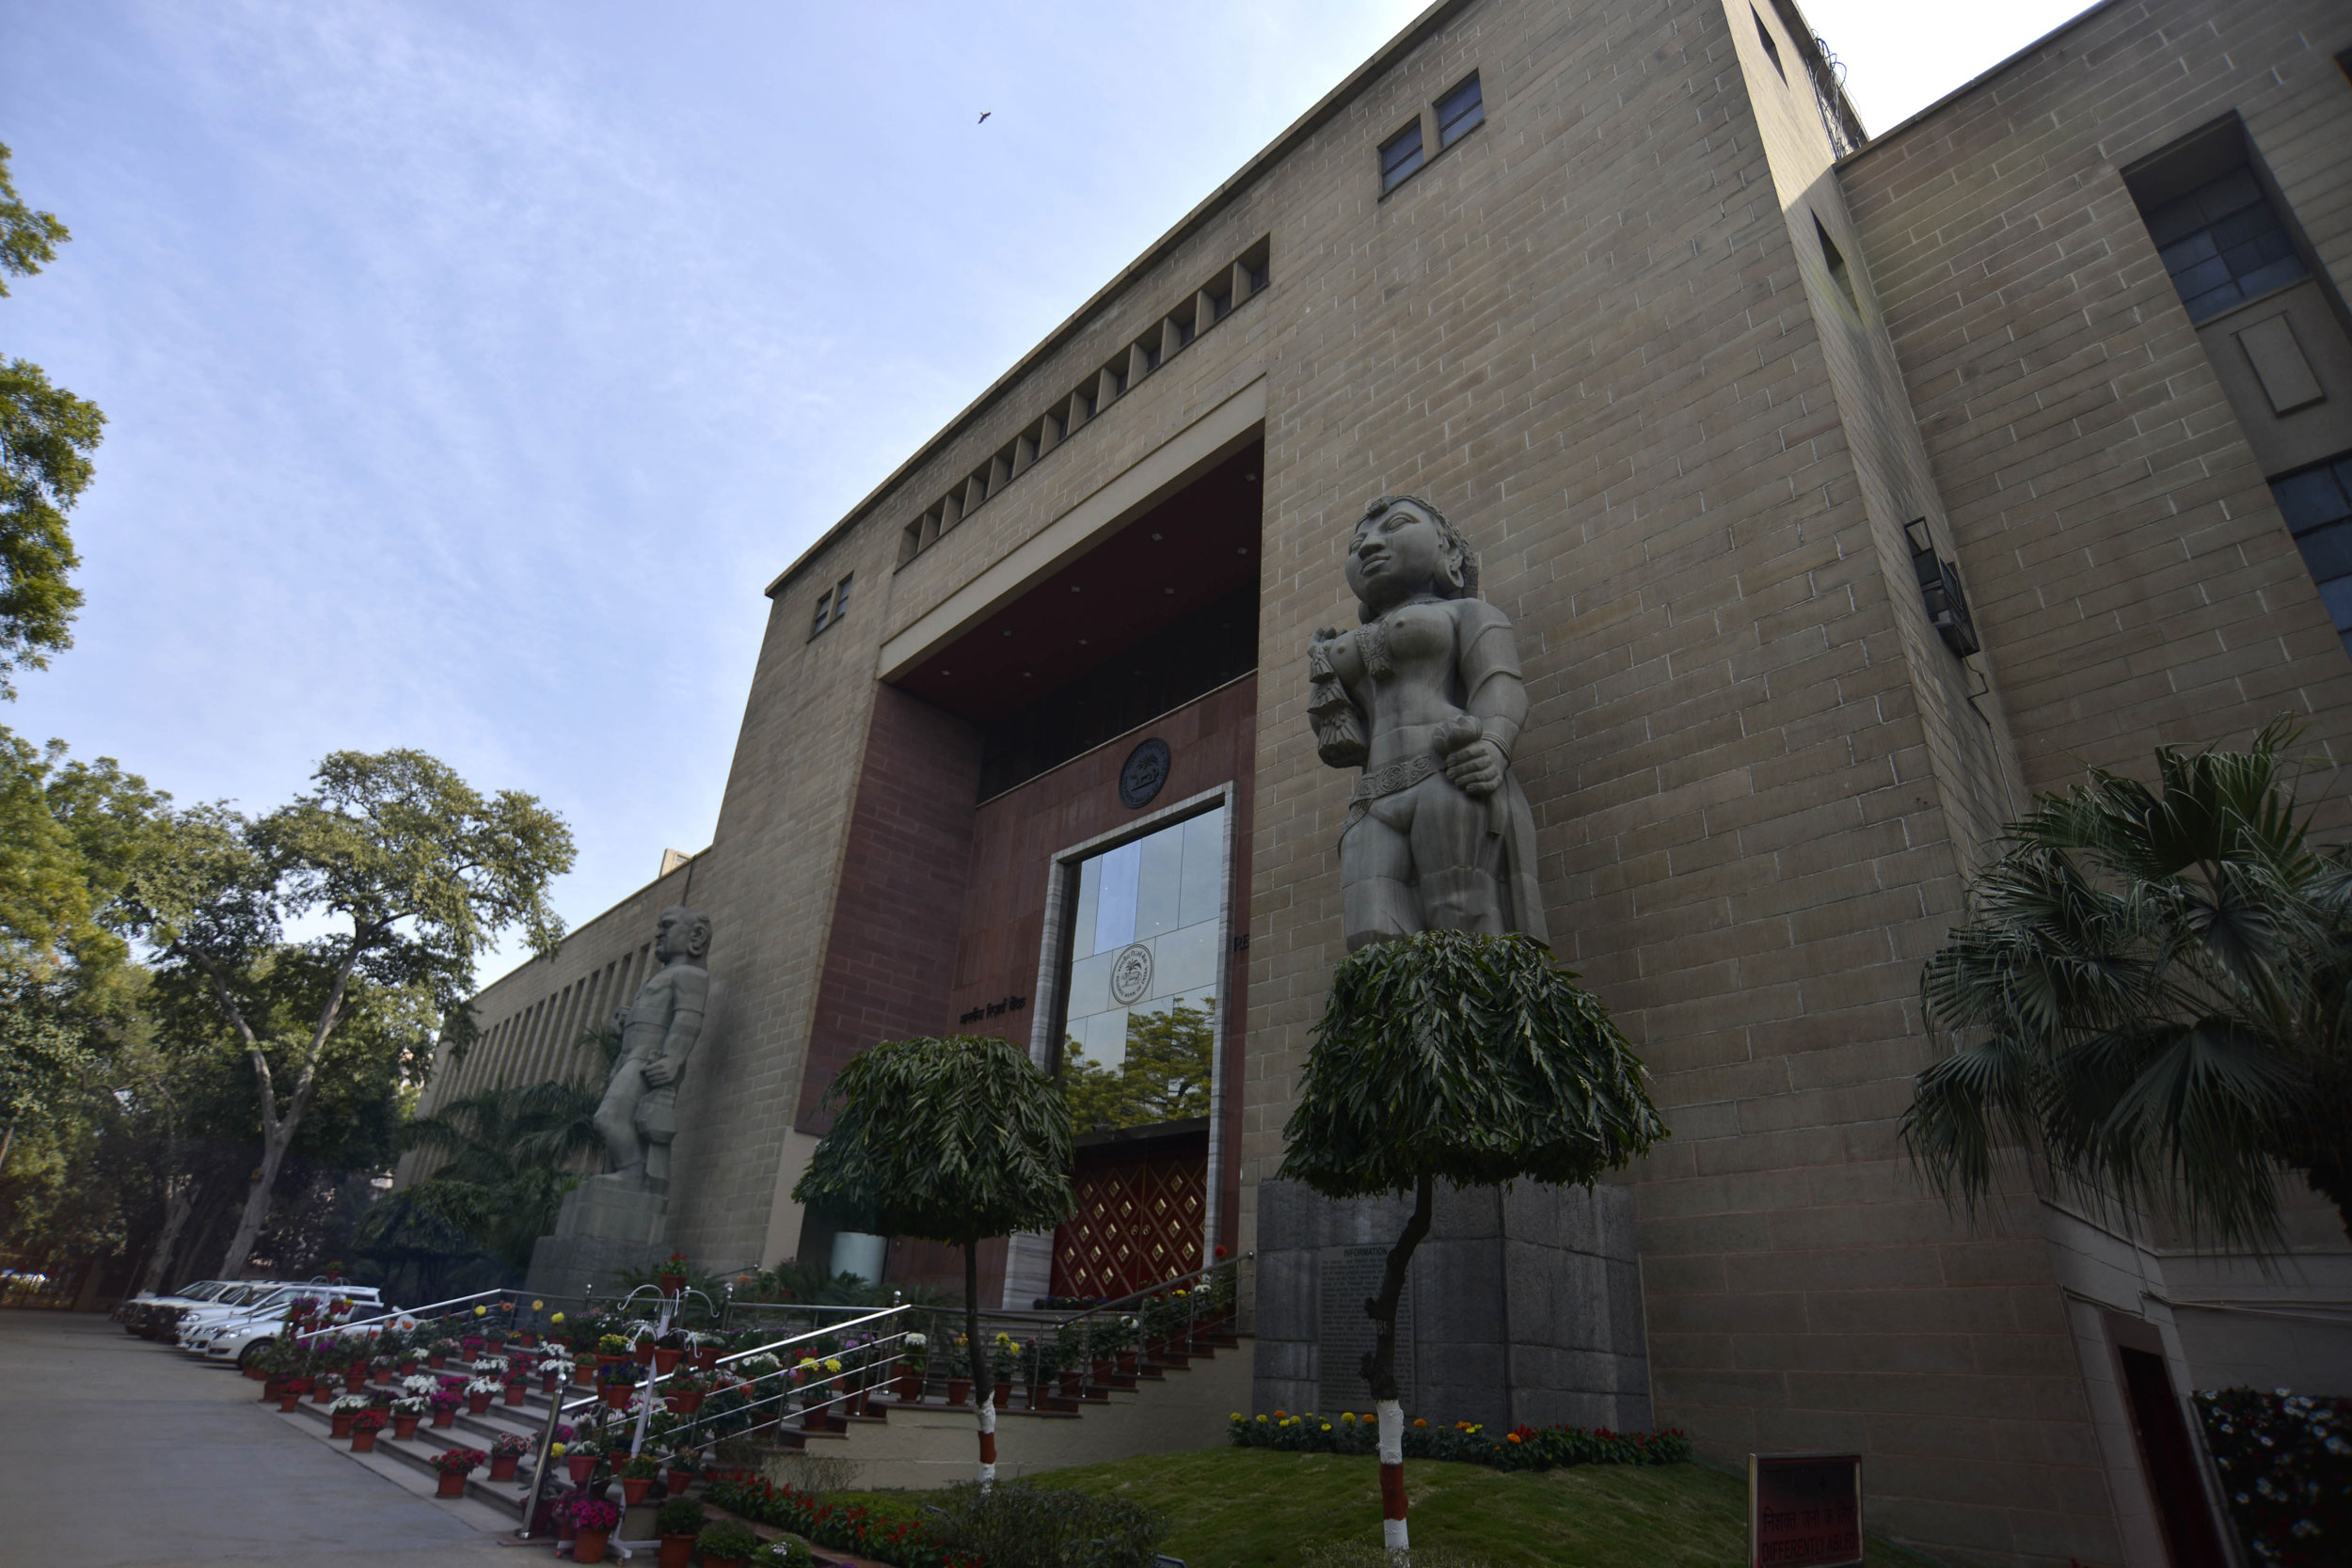 Information commissioner M. Sridhar Acharyulu asked the Central Information Commission their reason for contesting his November 2 decision to issue a showcause notice to RBI governor Urjit Patel over the central bank's failure to name the wilful loan defaulters